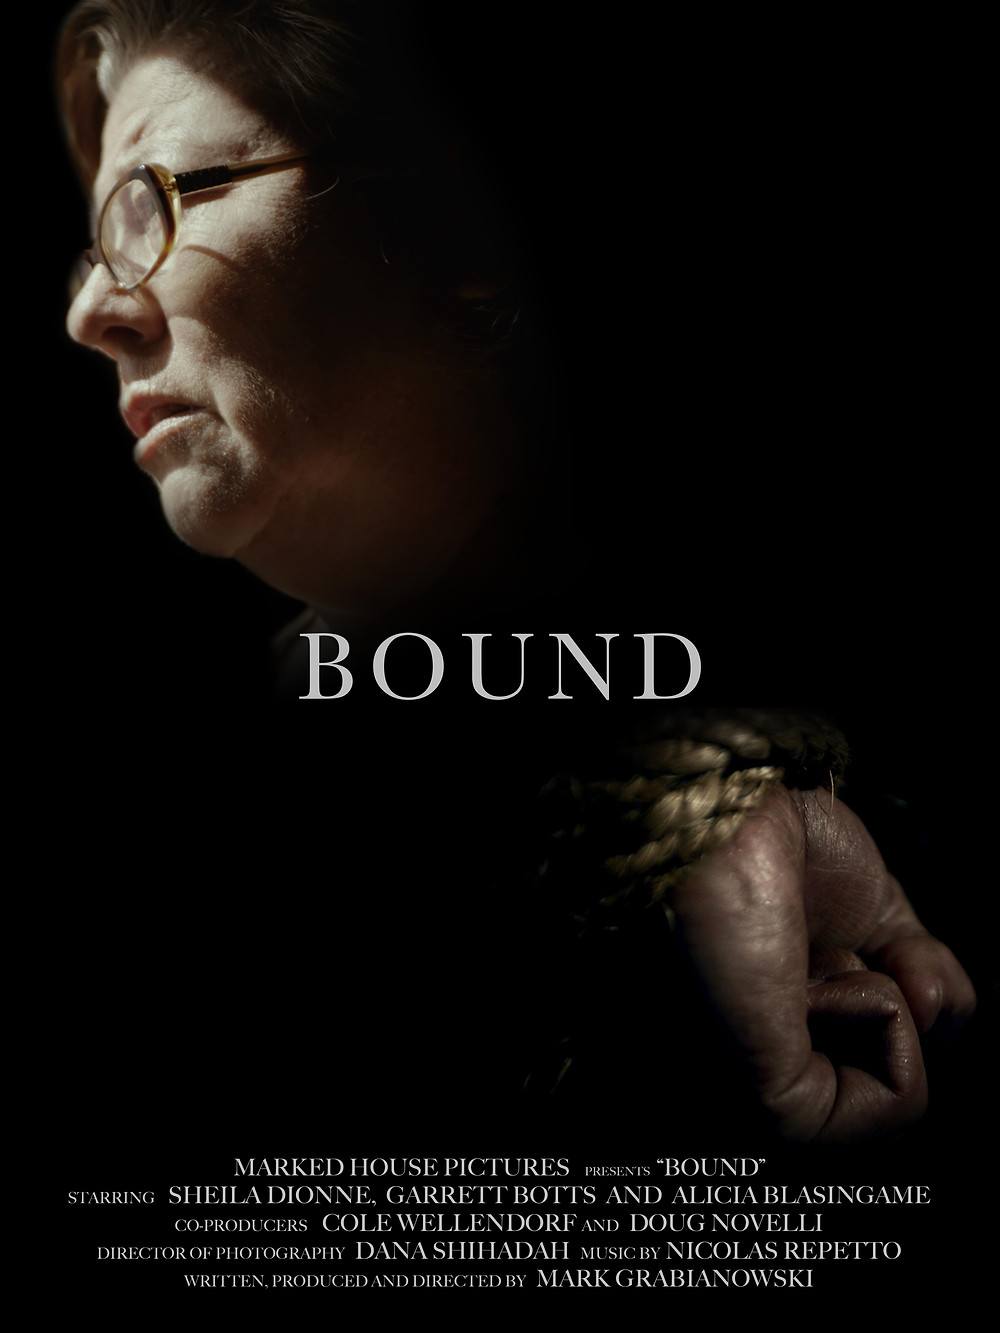 Poster for Bound showing protagonist.